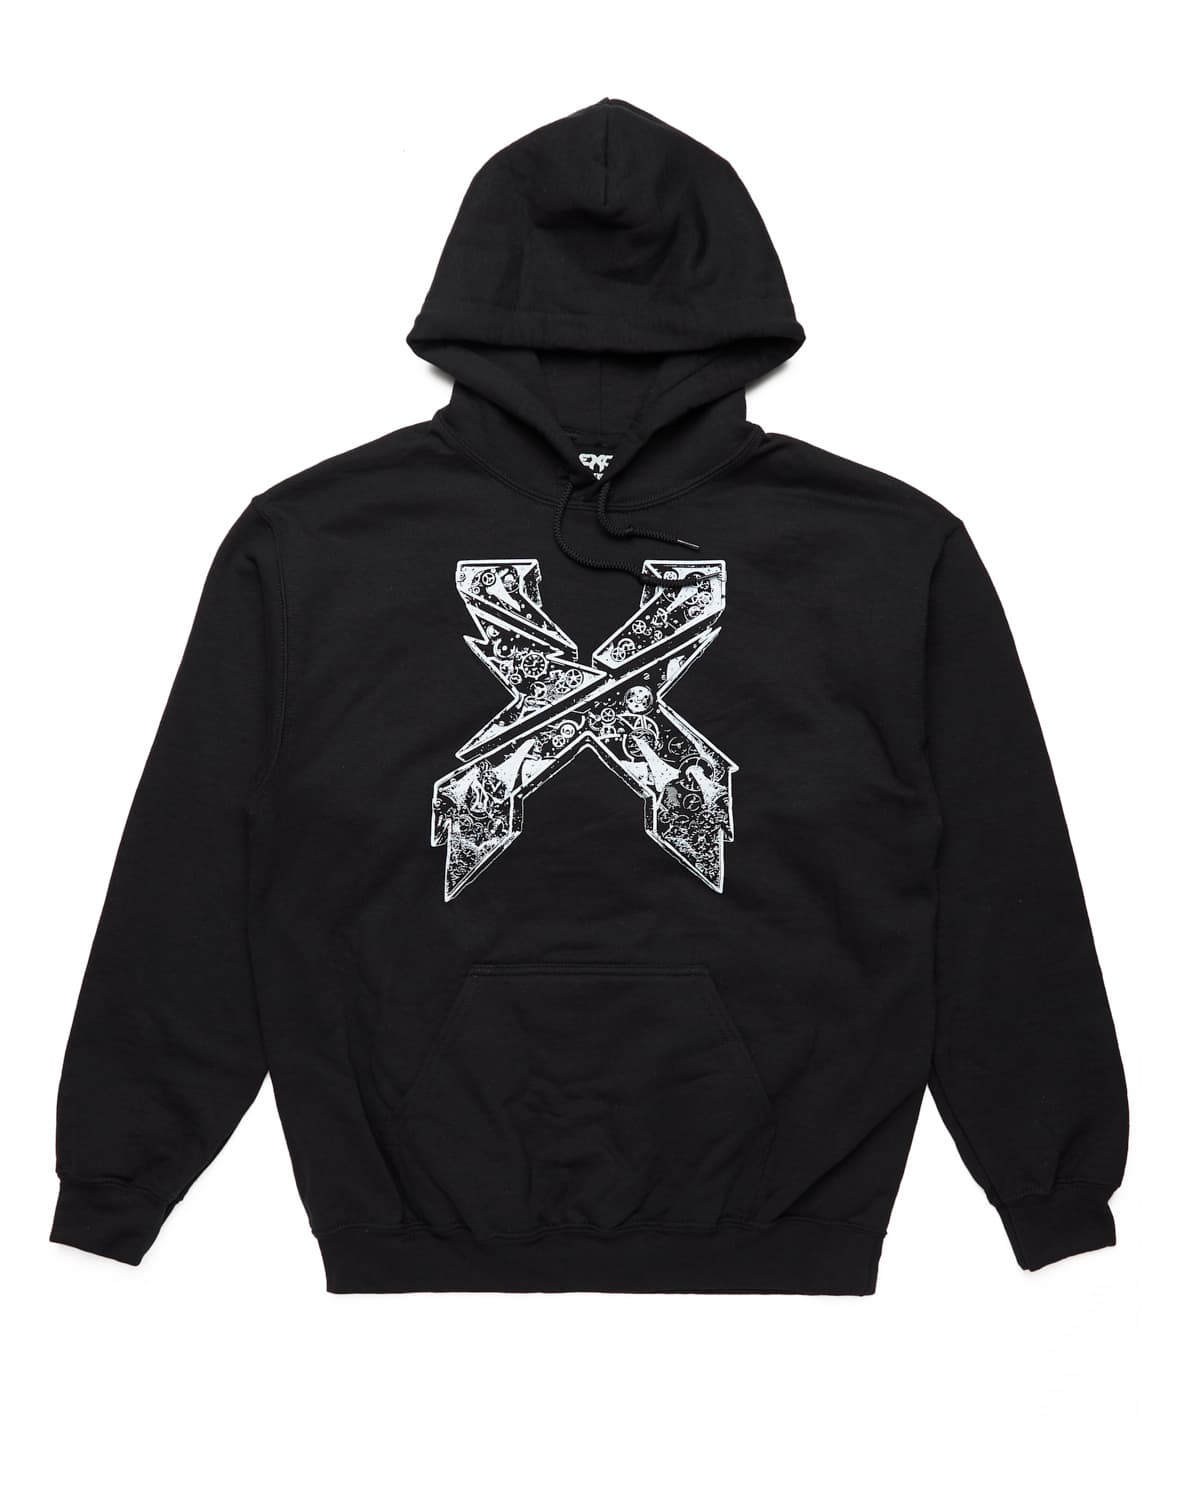 Evolution Tour Pullover Hoodie - Black